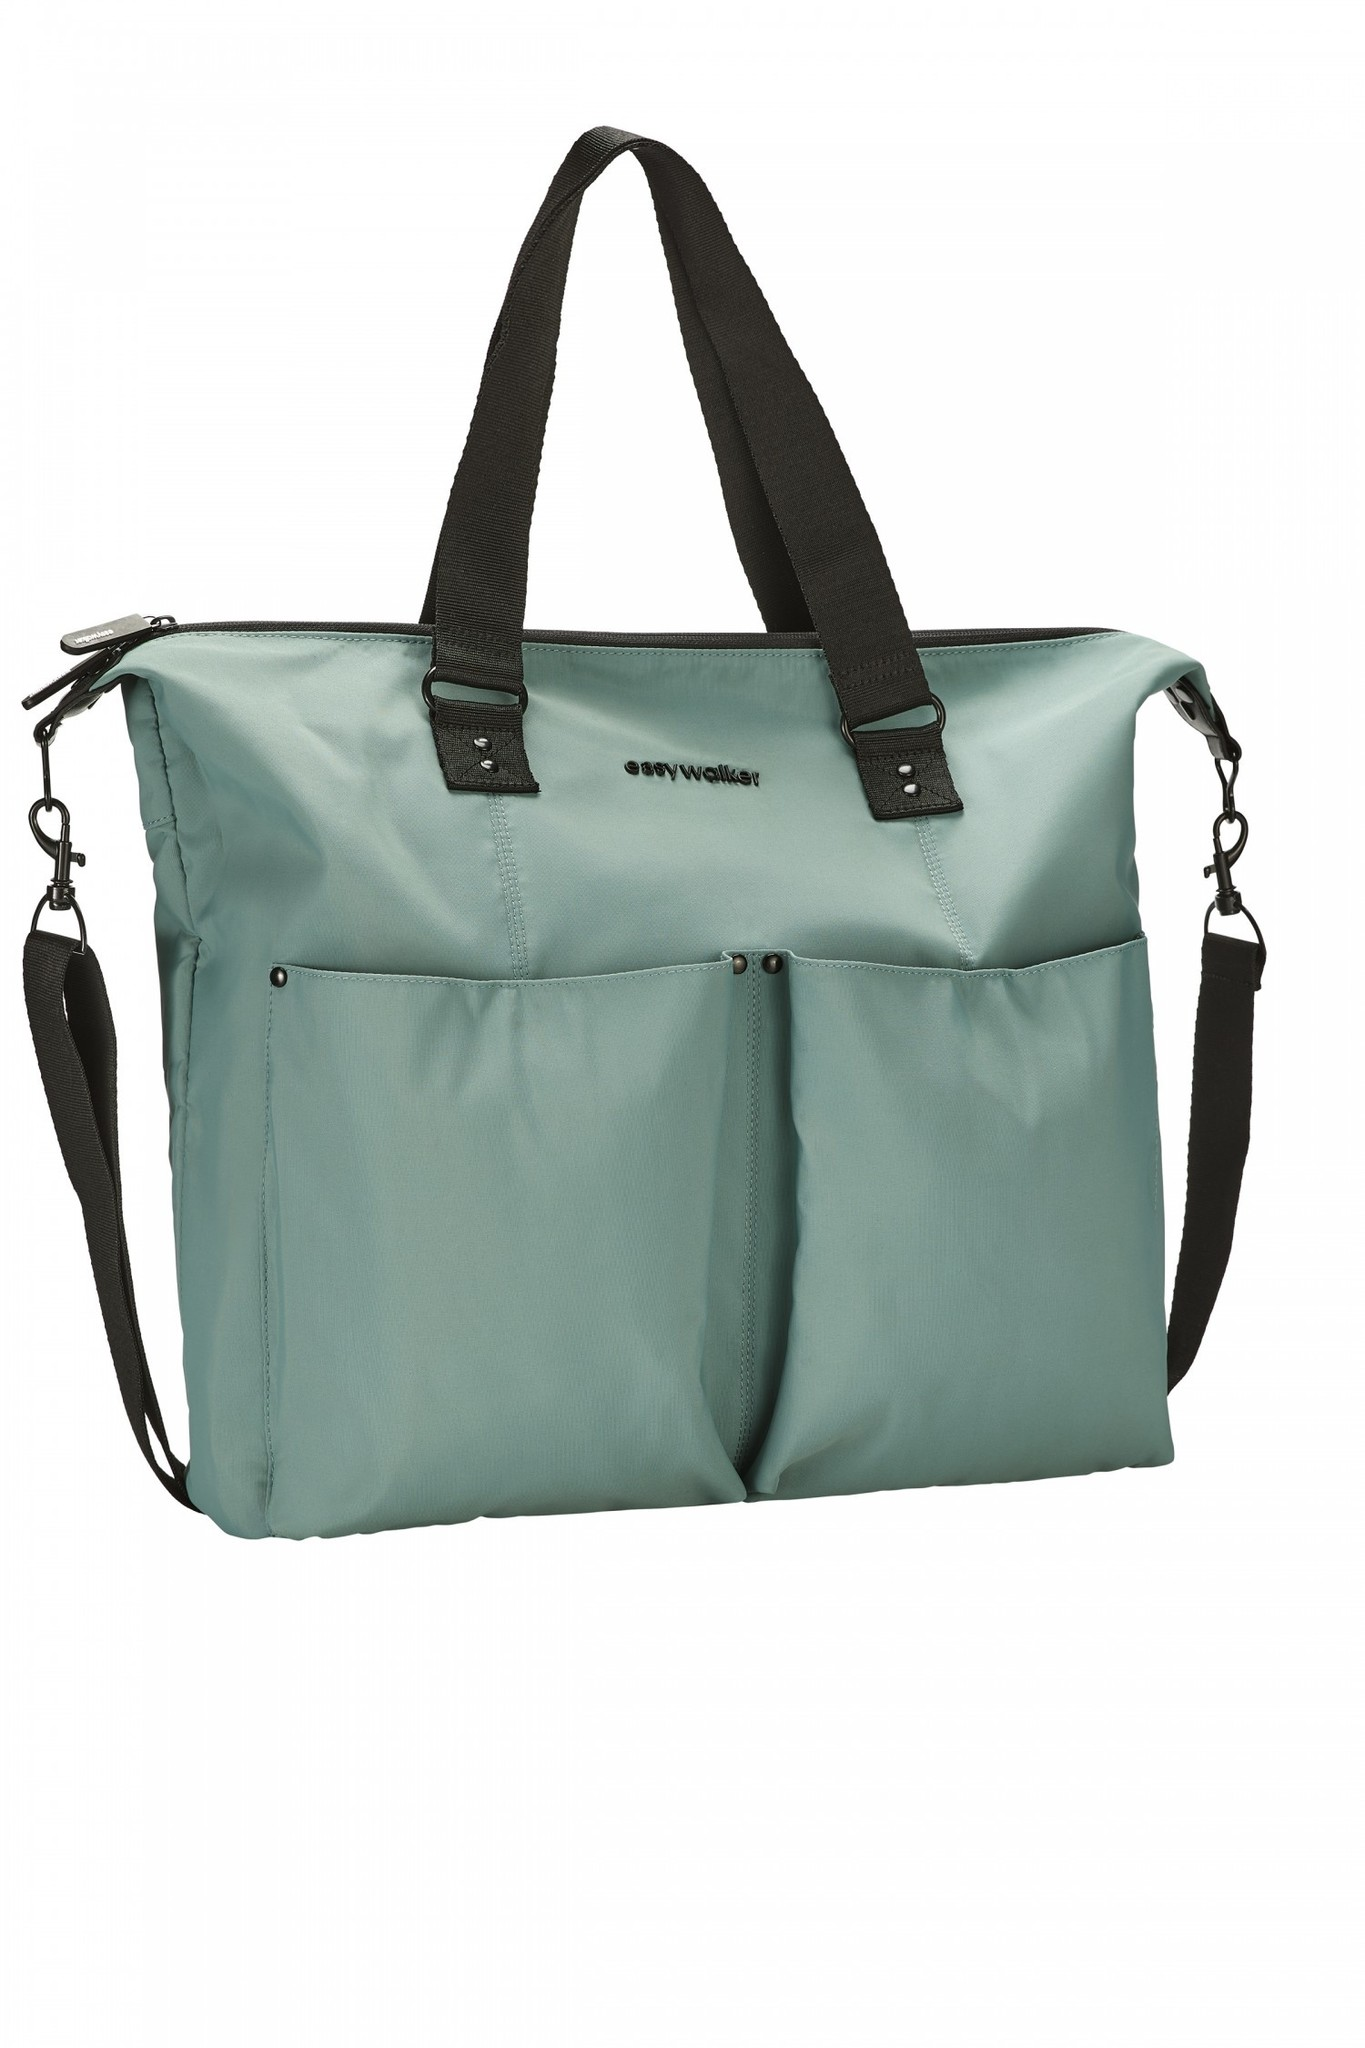 Easywalker Easywalker nursery bag / verzorgingstas Coral Green